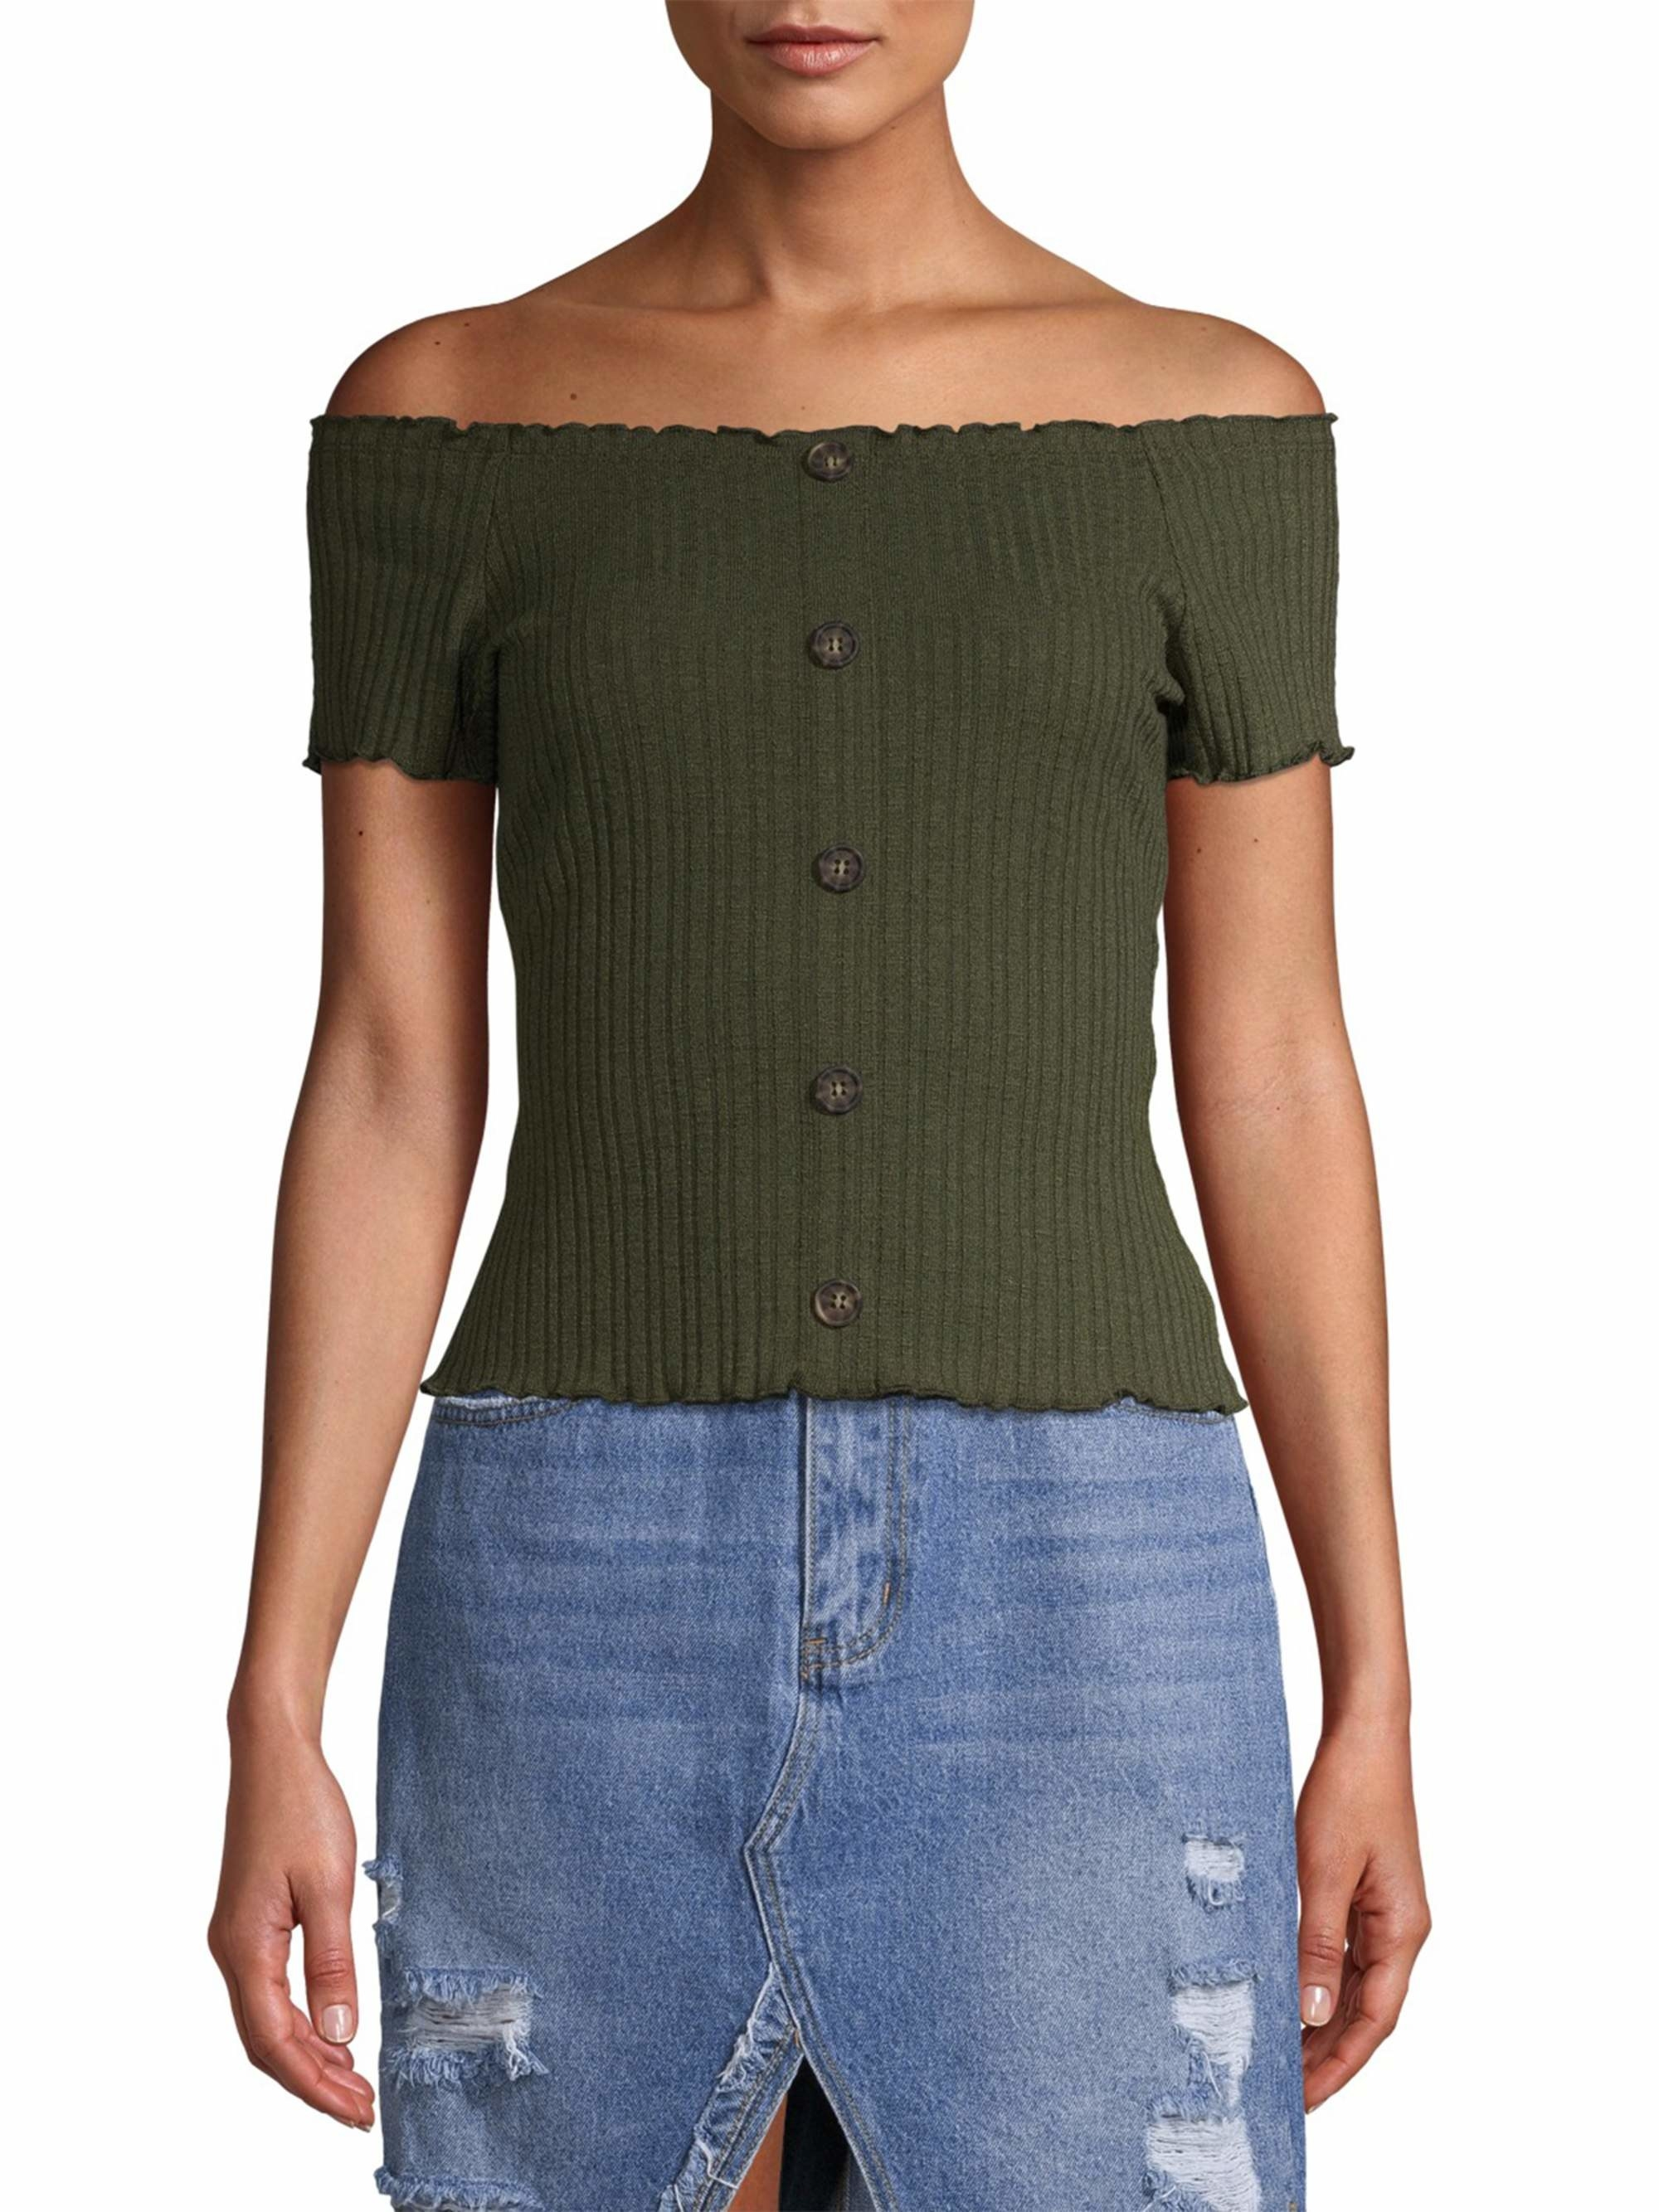 the ribbed off the shoulder top with buttons down the middle in forest green